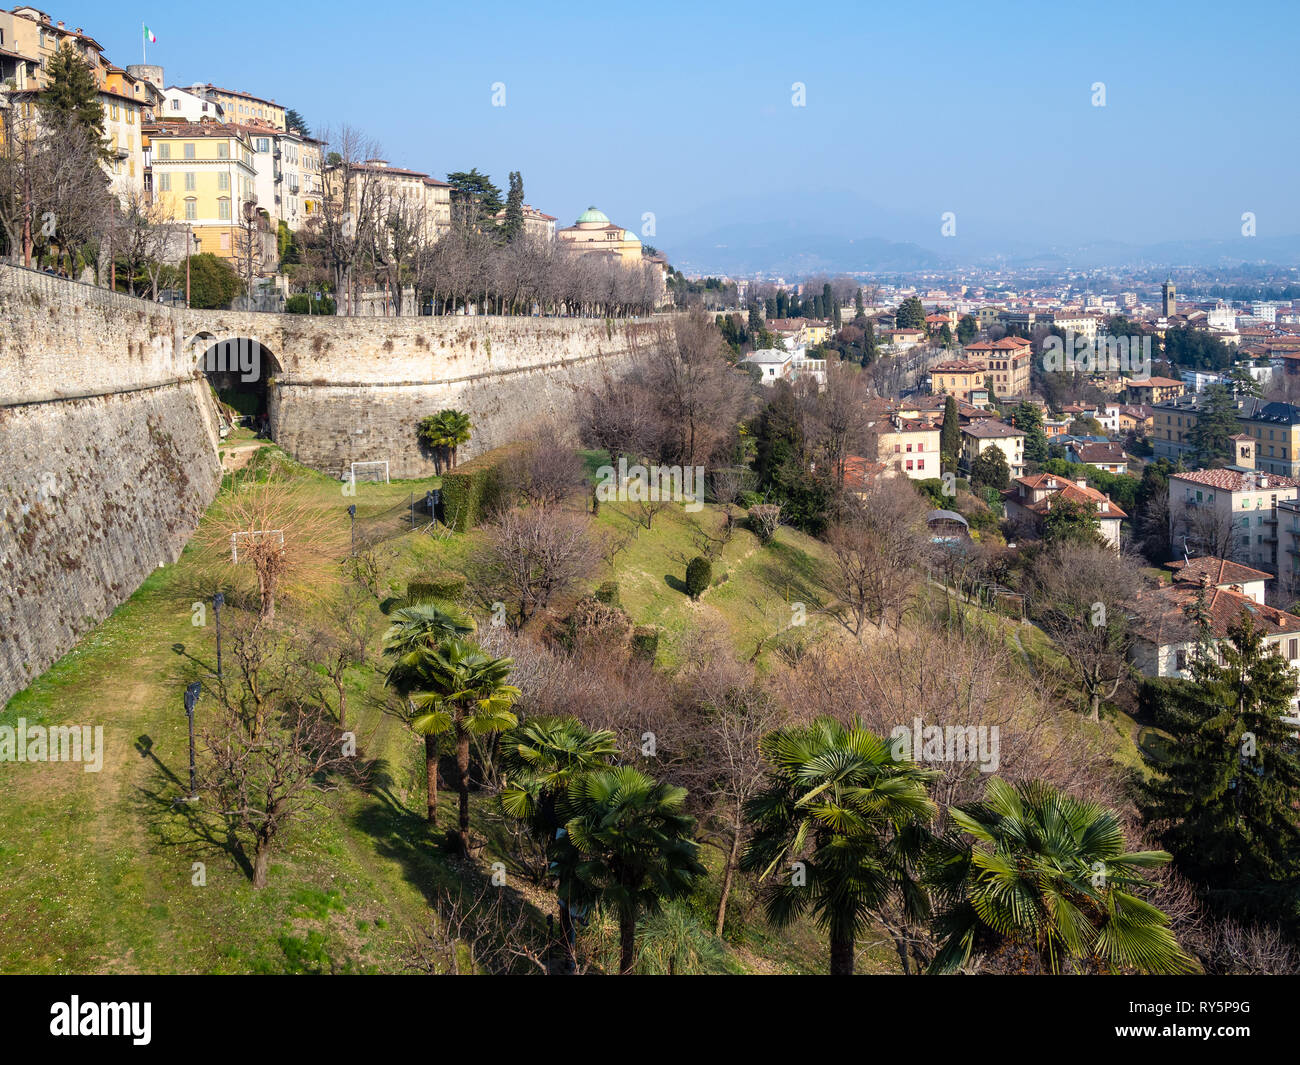 Travel to Italy - street viale delle Mura over Sant Andrea platform of Venetian Walls and view of Lower Town (Citta Bassa) from Porta San Giacomo gate Stock Photo